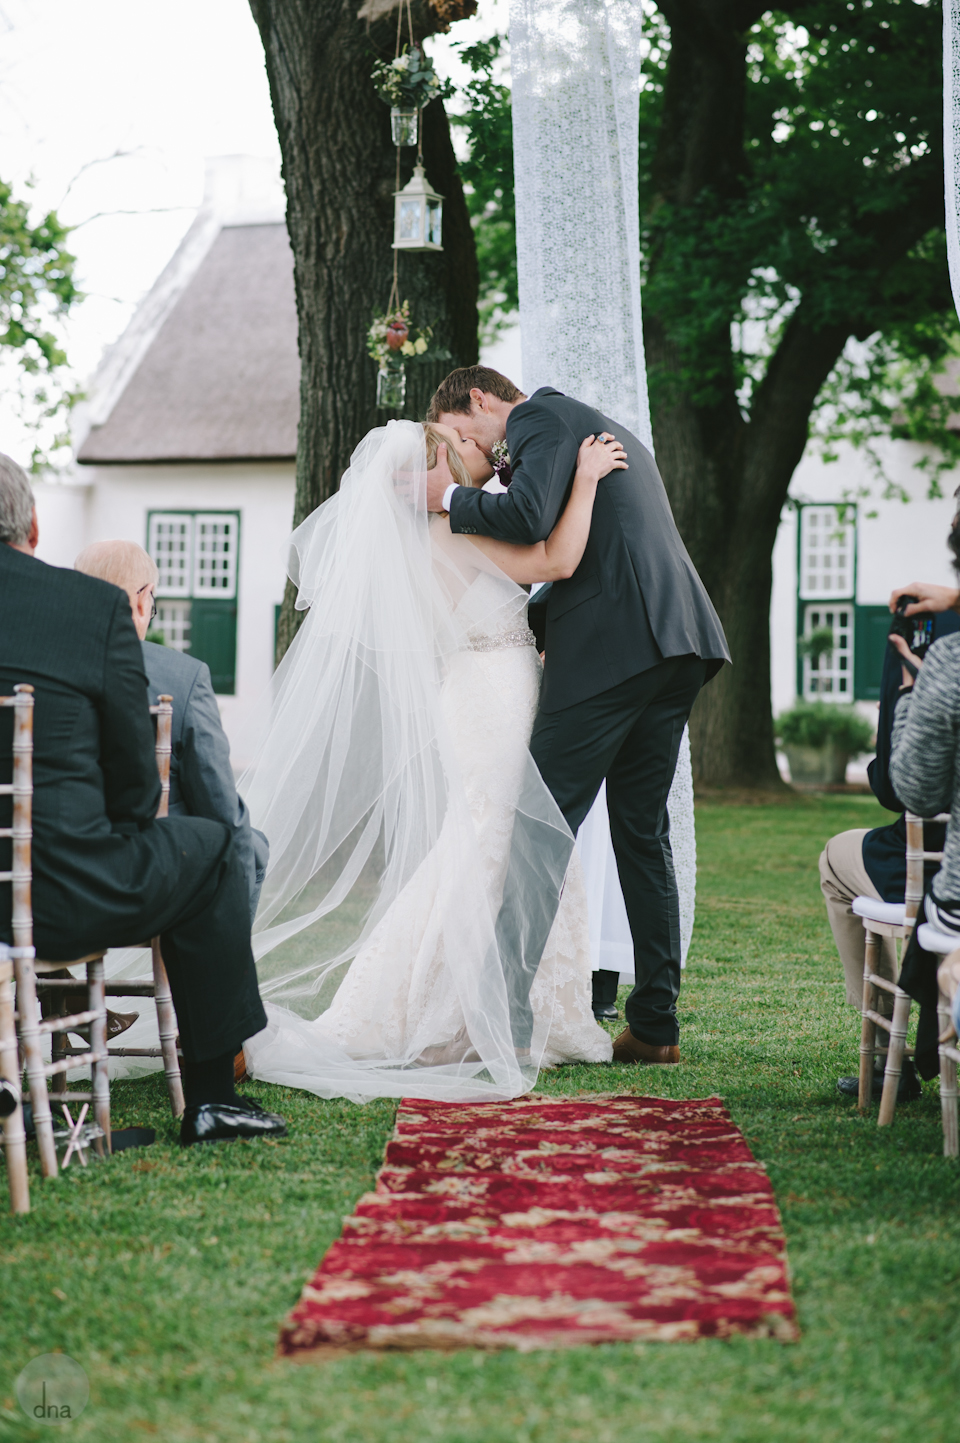 Amy and Marnus wedding Hawksmore House Stellenbosch South Africa shot by dna photographers_-562.jpg